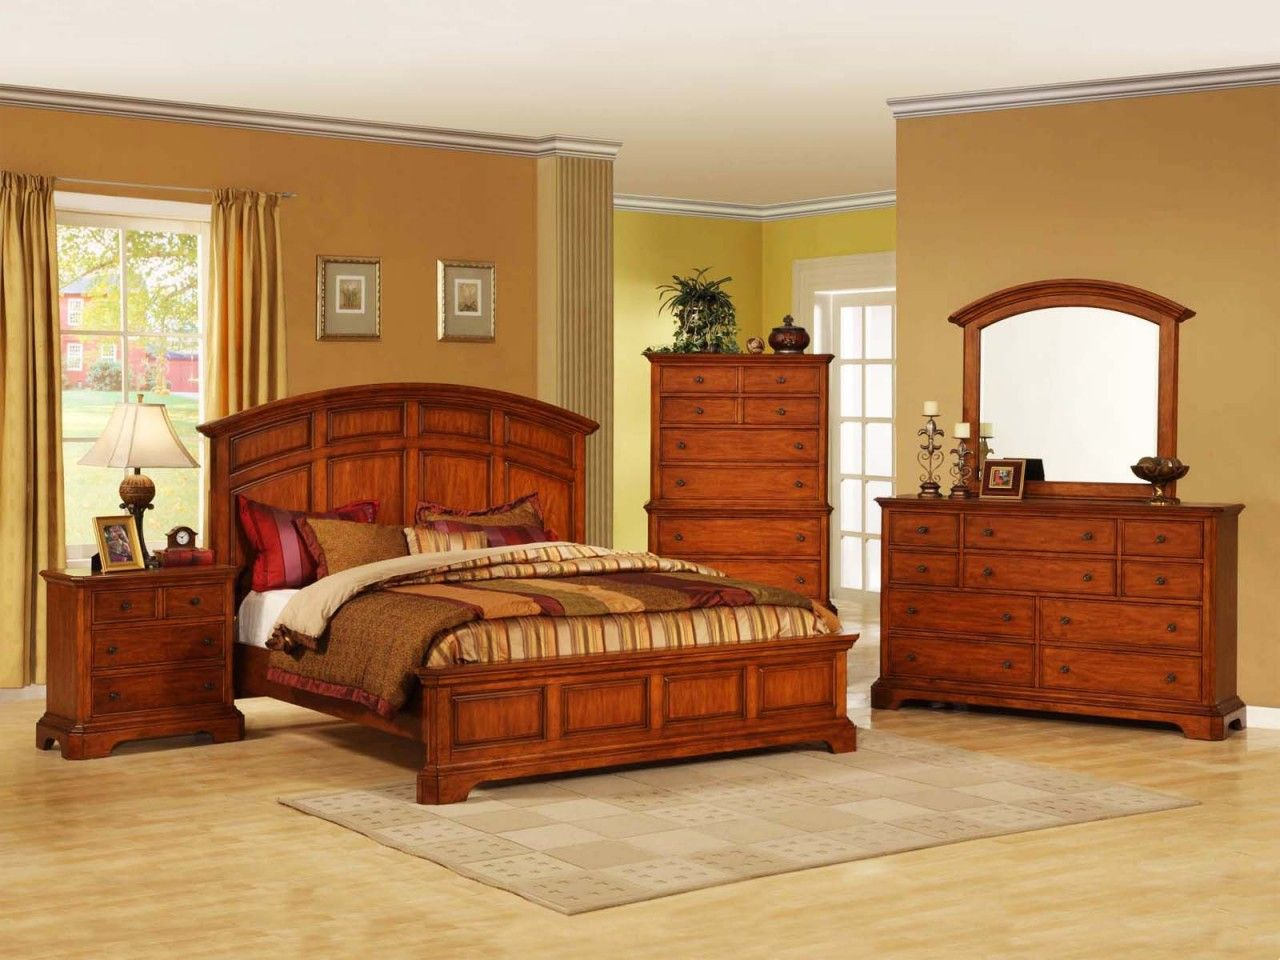 New Style Bedroom Furniture Country Style Bedroom Furniture